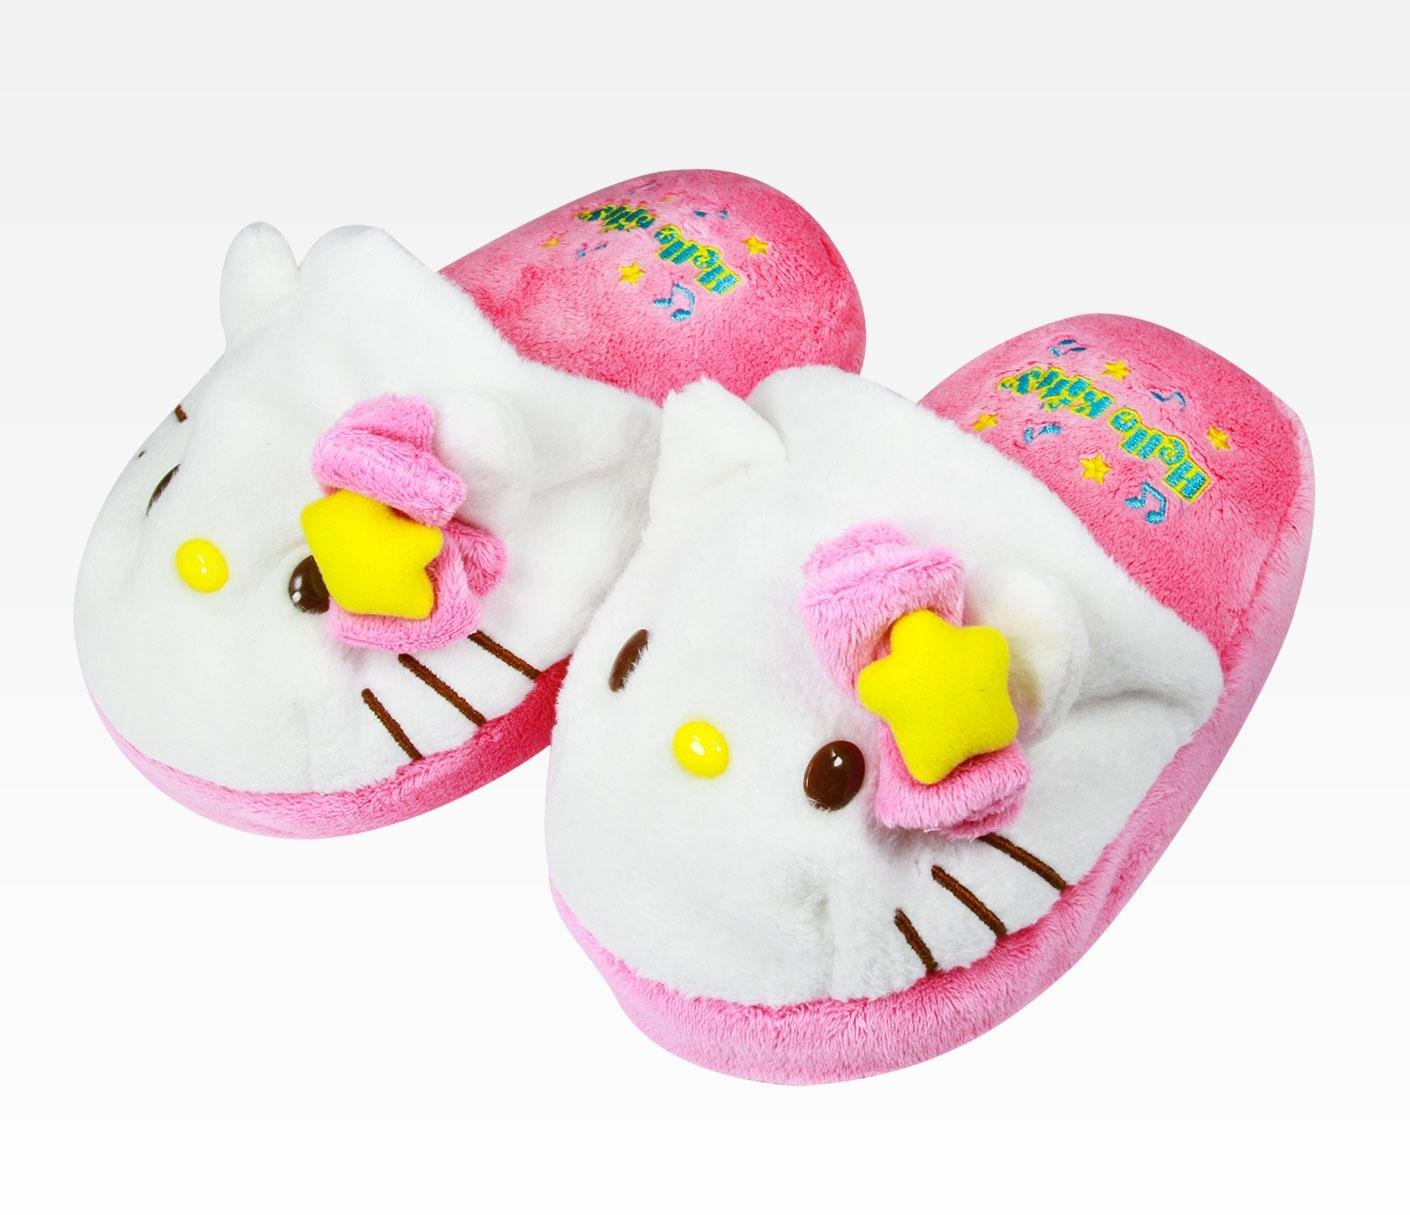 a1c5a4397 Get Quotations · Hello Kitty Kids Squeaky Kids Slippers: Melody (Small)  Kids Size 7-8